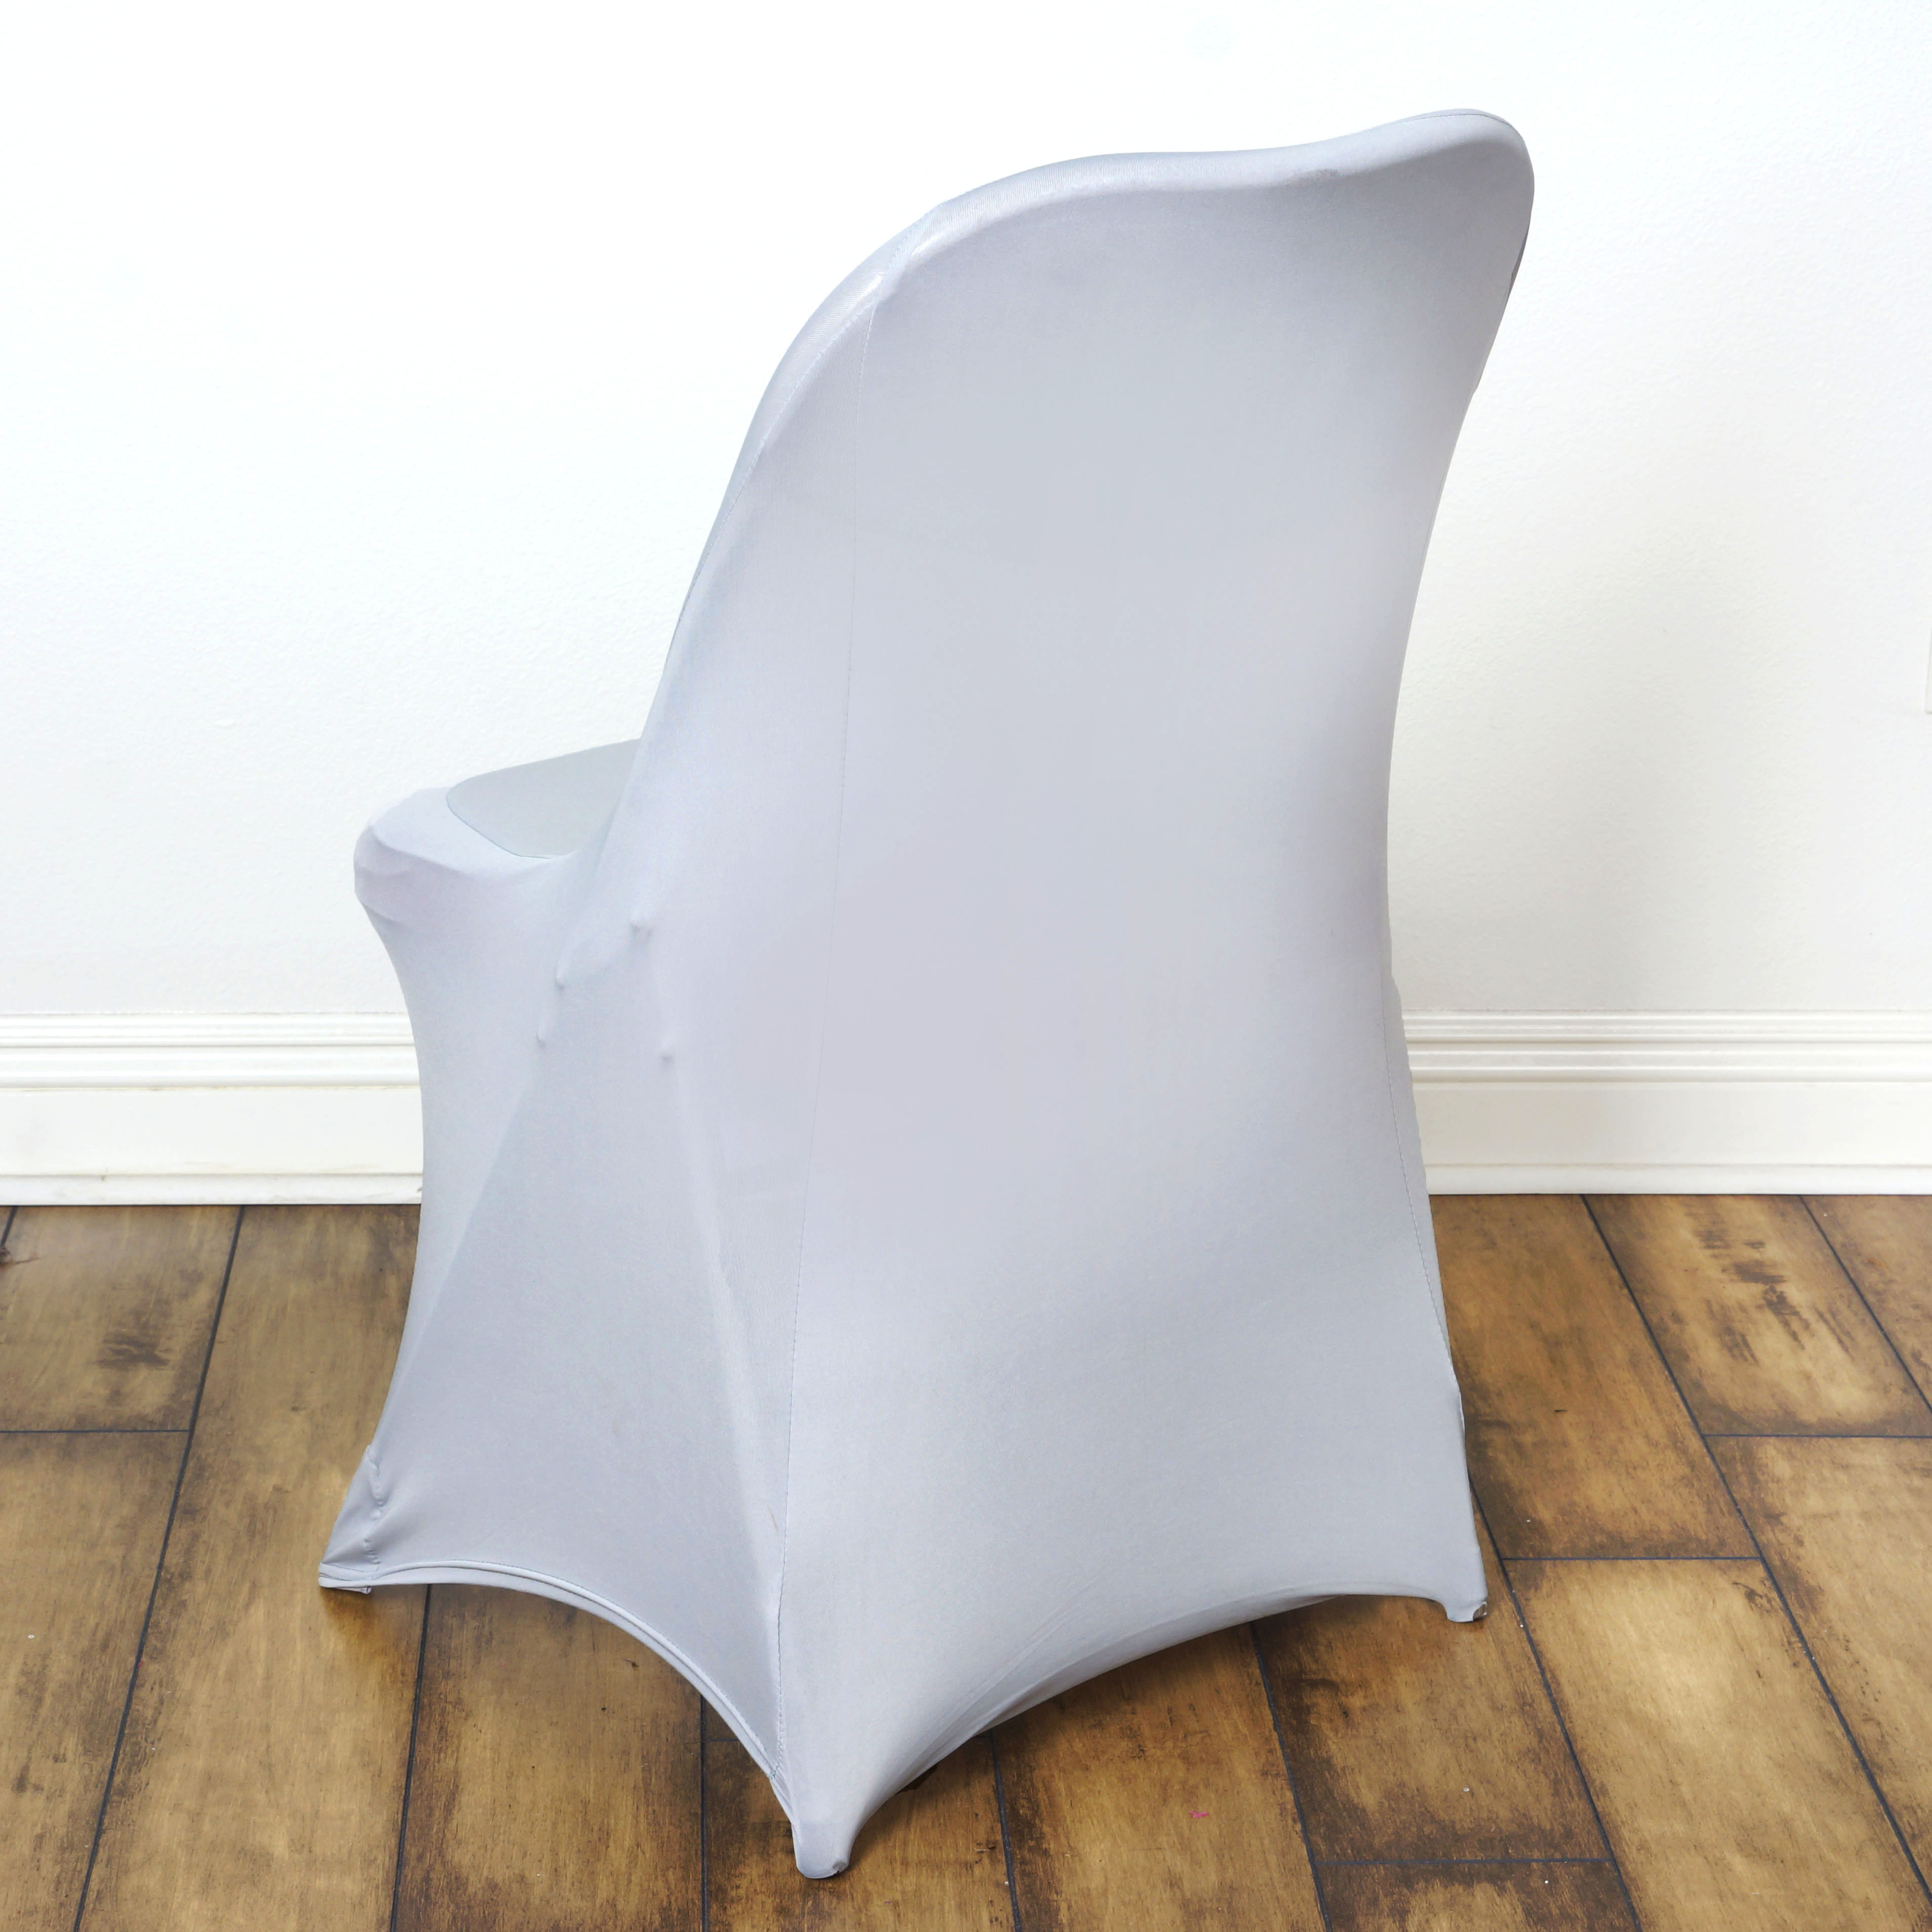 lifetime chair covers ivory leather cushions indoor 50 pcs spandex fitted folding for wedding